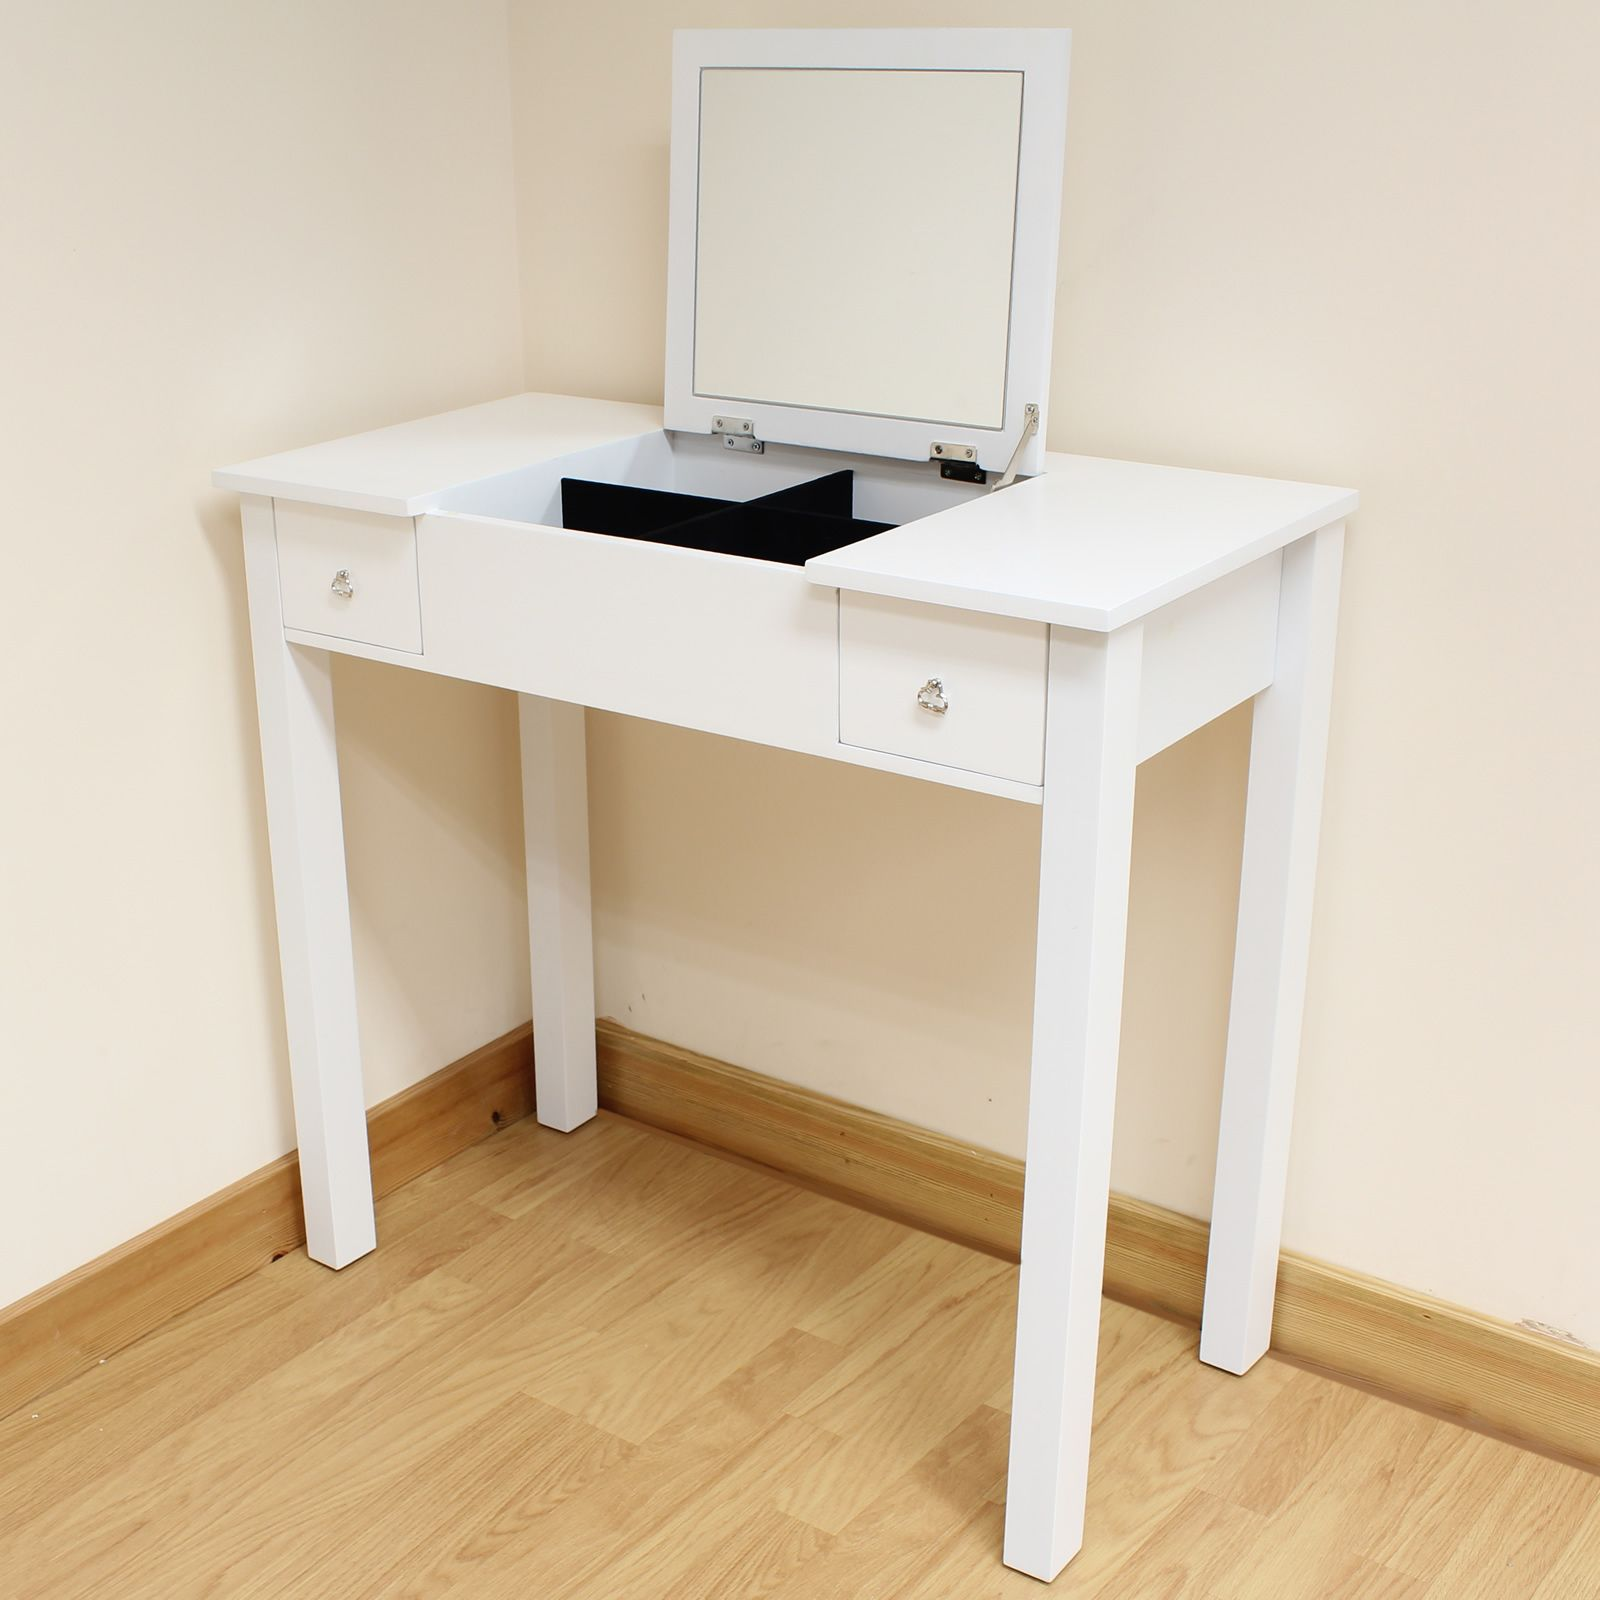 White Dressing Room Bedroom Vanity Make Up Table Desk Folding Mirror & Storage in Home Furniture & DIY Furniture Dressing Tables